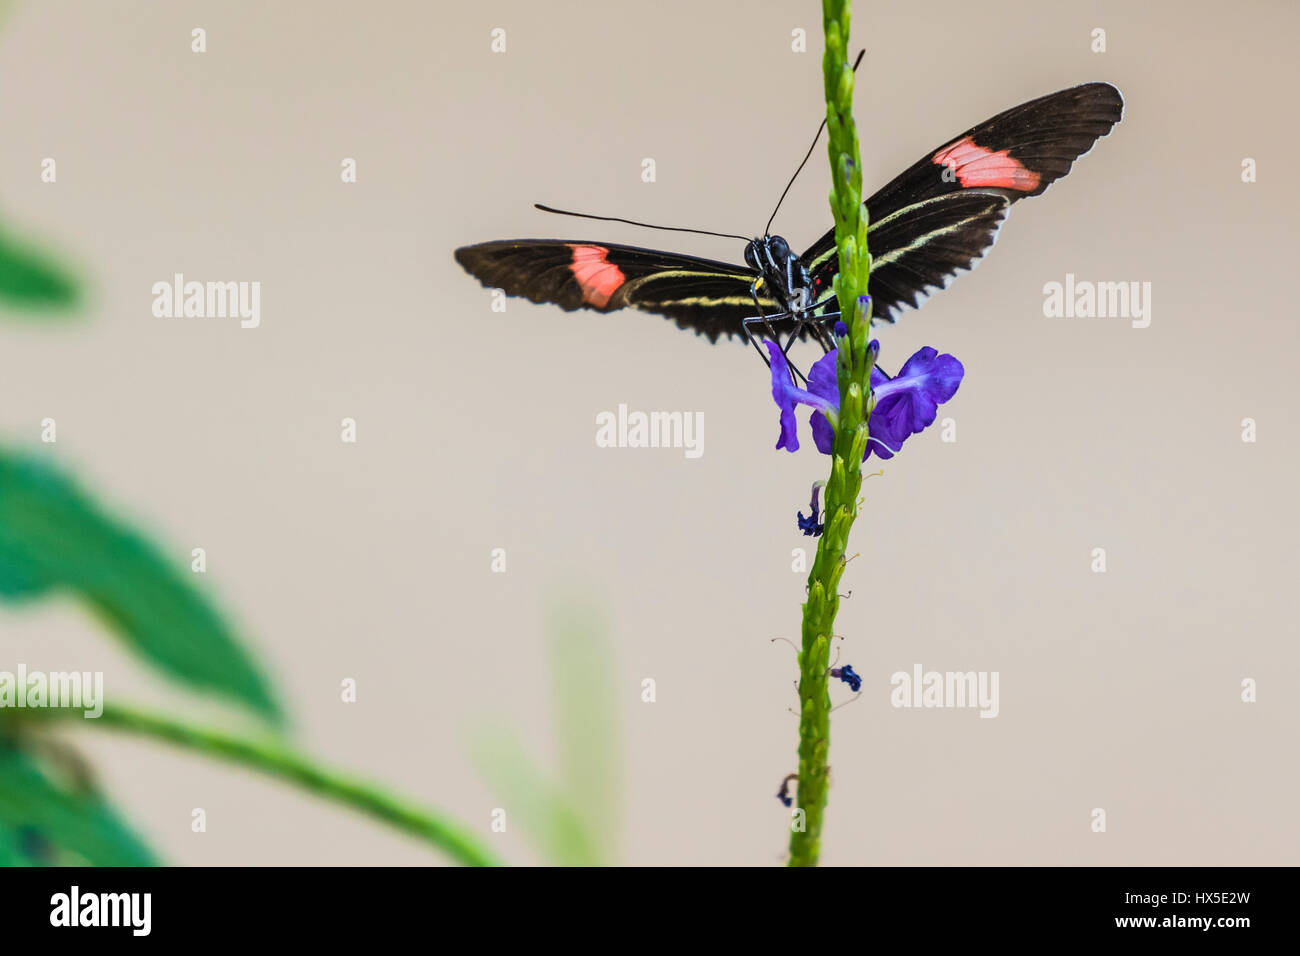 The Postman Longwing Butterfly on Porterweed flower in Cecil B Day Butterfly Center at Callaway Gardens. - Stock Image